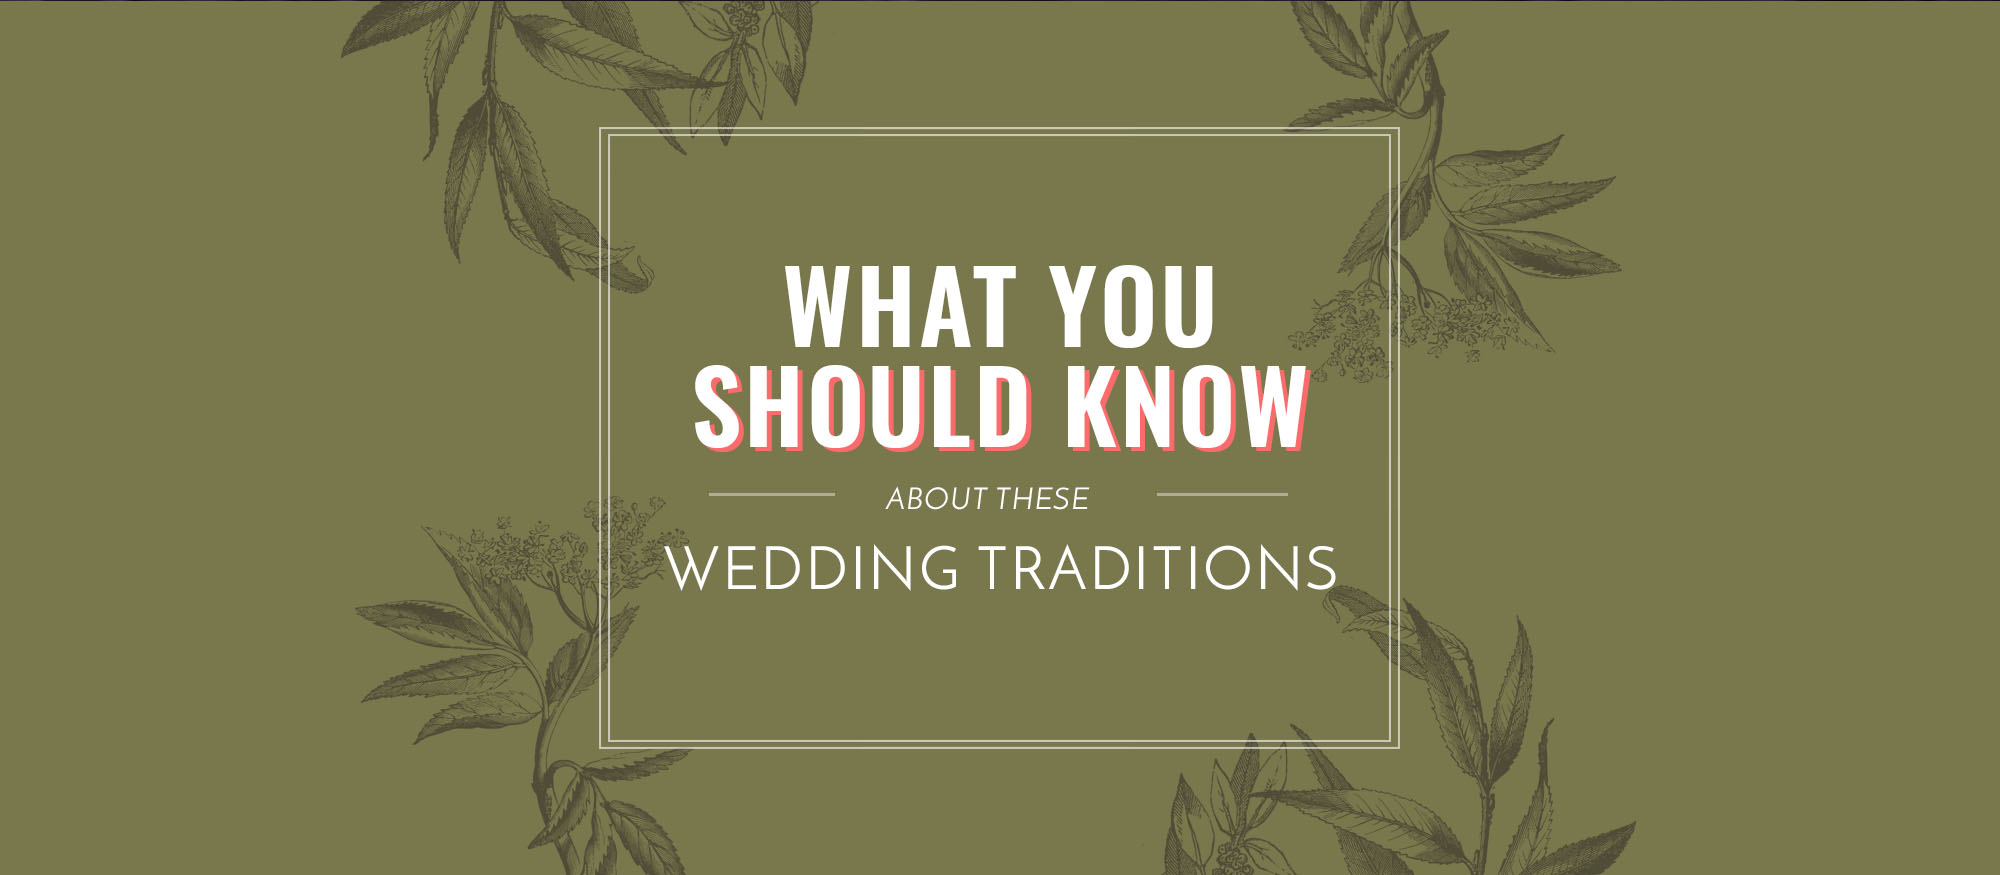 What you should know about these wedding traditions